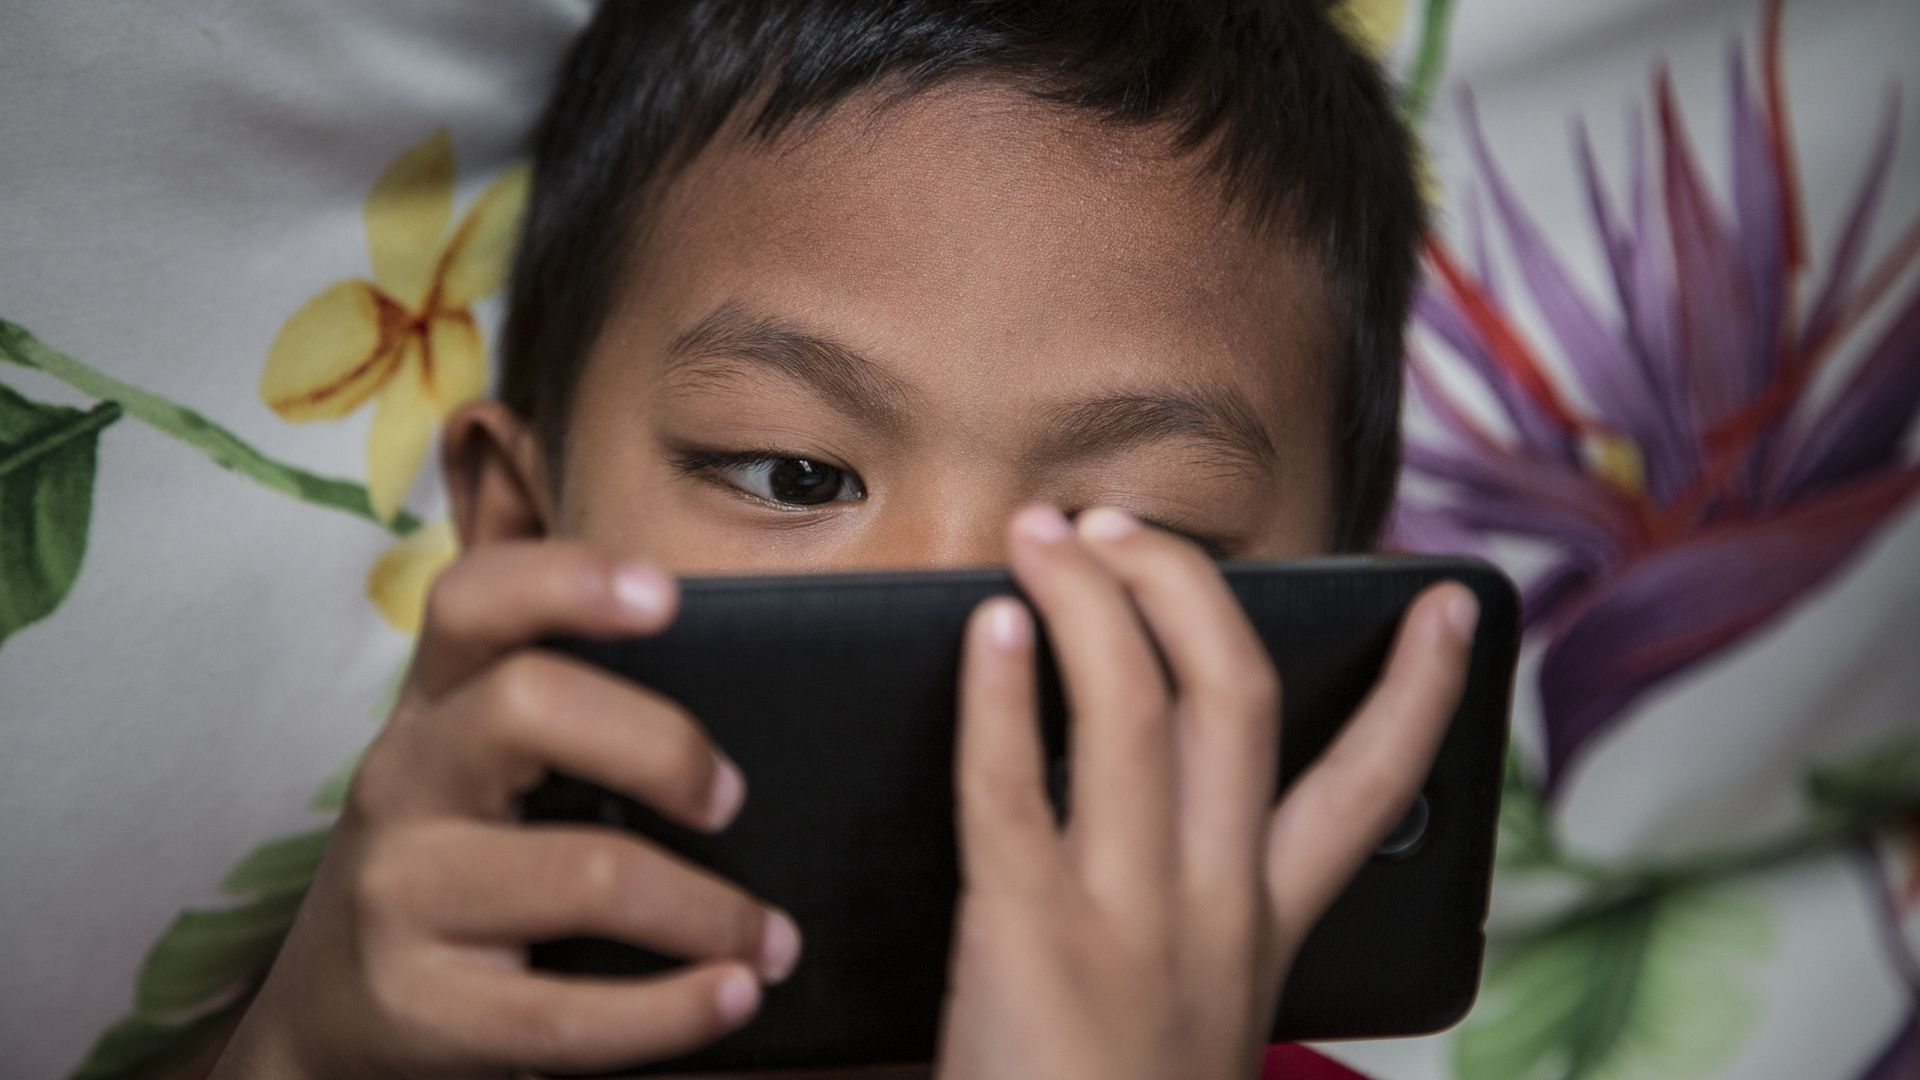 A child looks at a mobile phone.